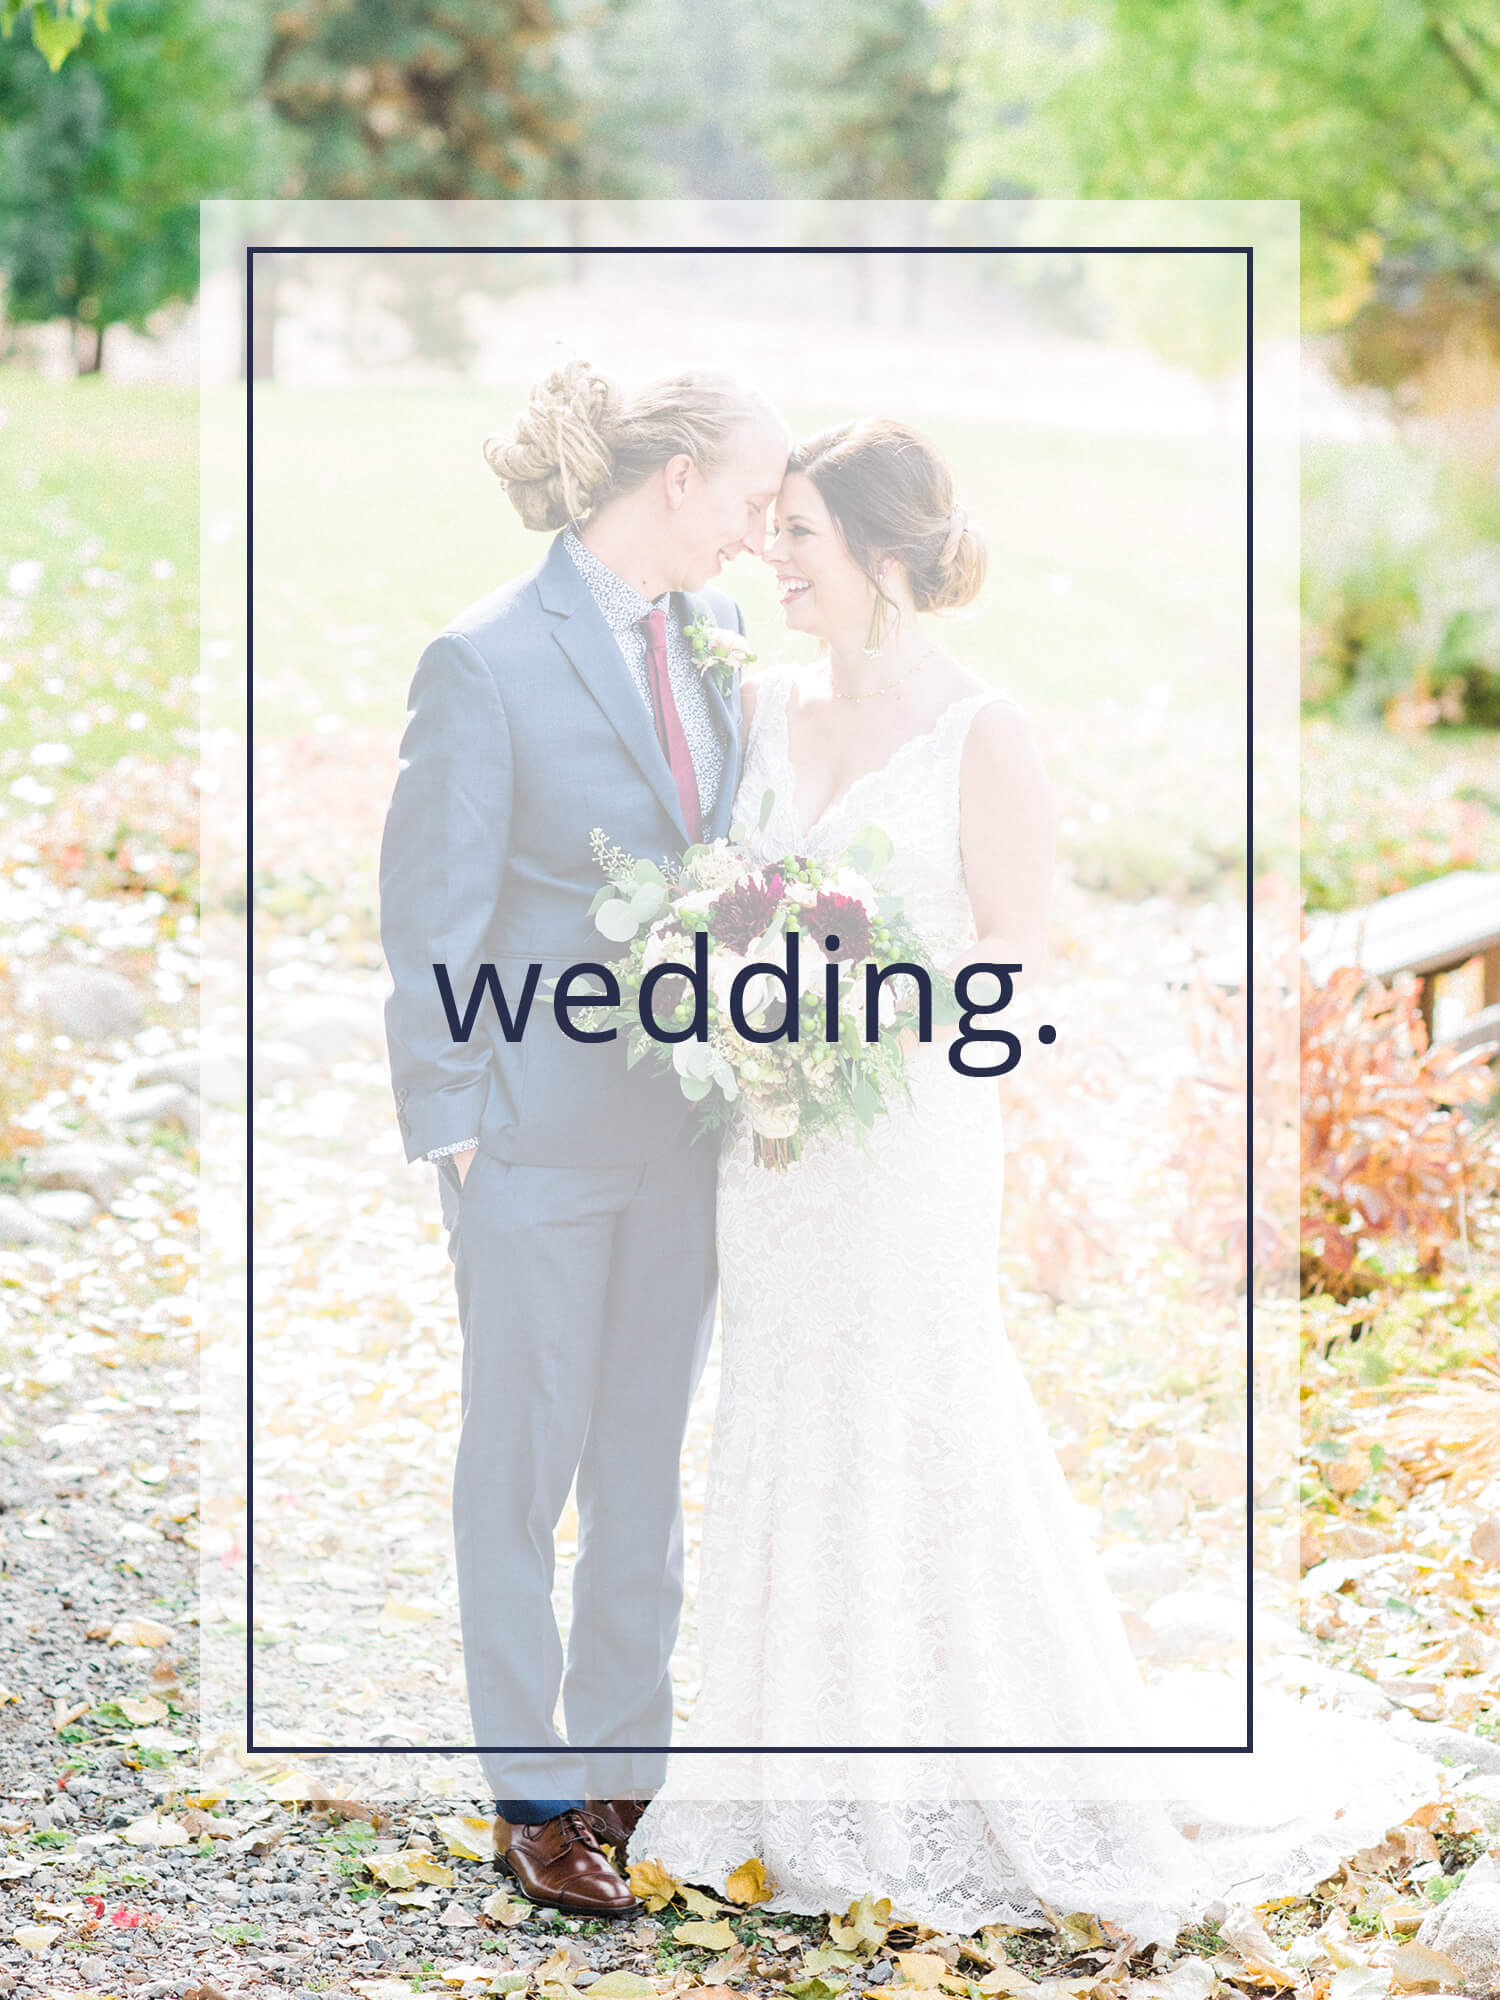 KC England Photography - Home Photo Buttons_Wedding.jpg